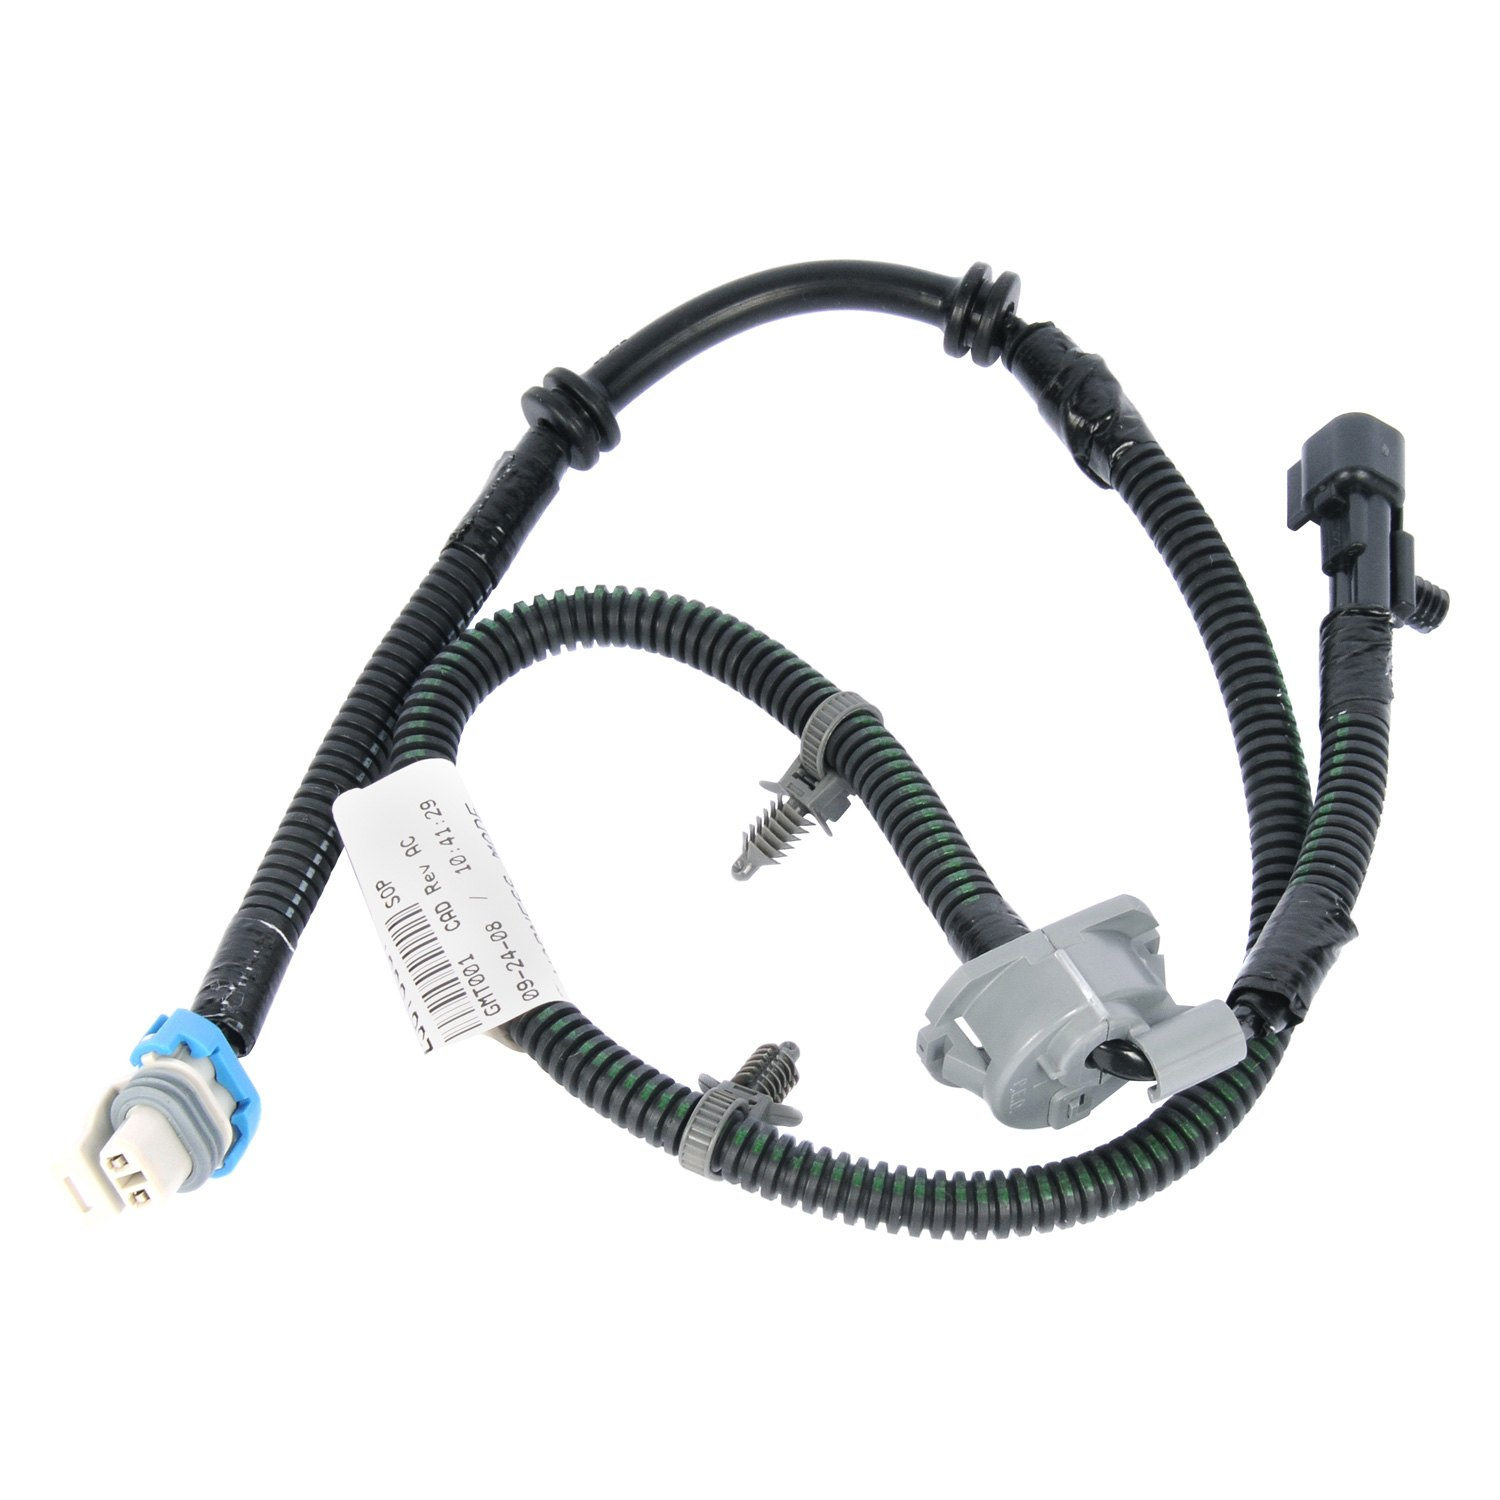 Acdelco Chevy Hhr 2009 Gm Original Equipment Front Abs Wheel Wiring Harness For Vehicles Speed Sensor